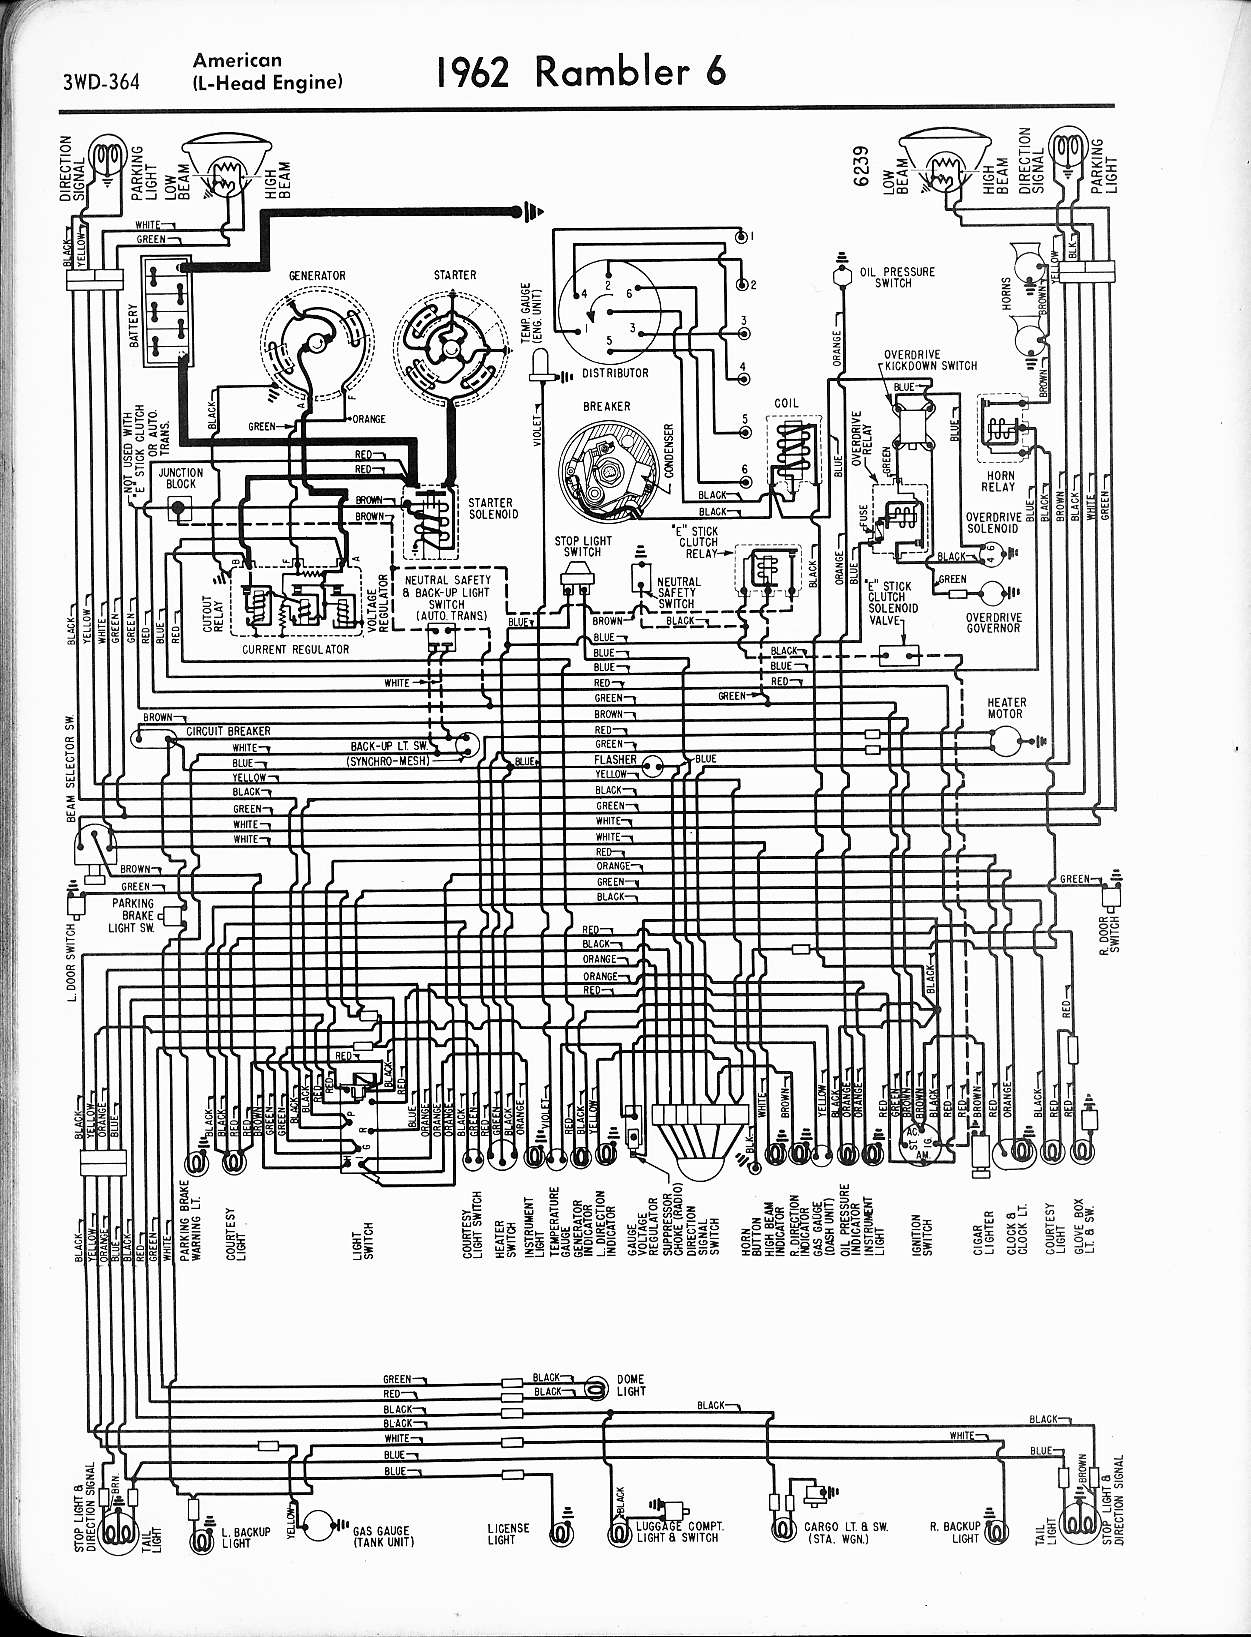 rambler wiring diagrams the old car manual project rh oldcarmanualproject com Honda Rebel Chopper Wiring 1987 Honda Rebel Wiring-Diagram